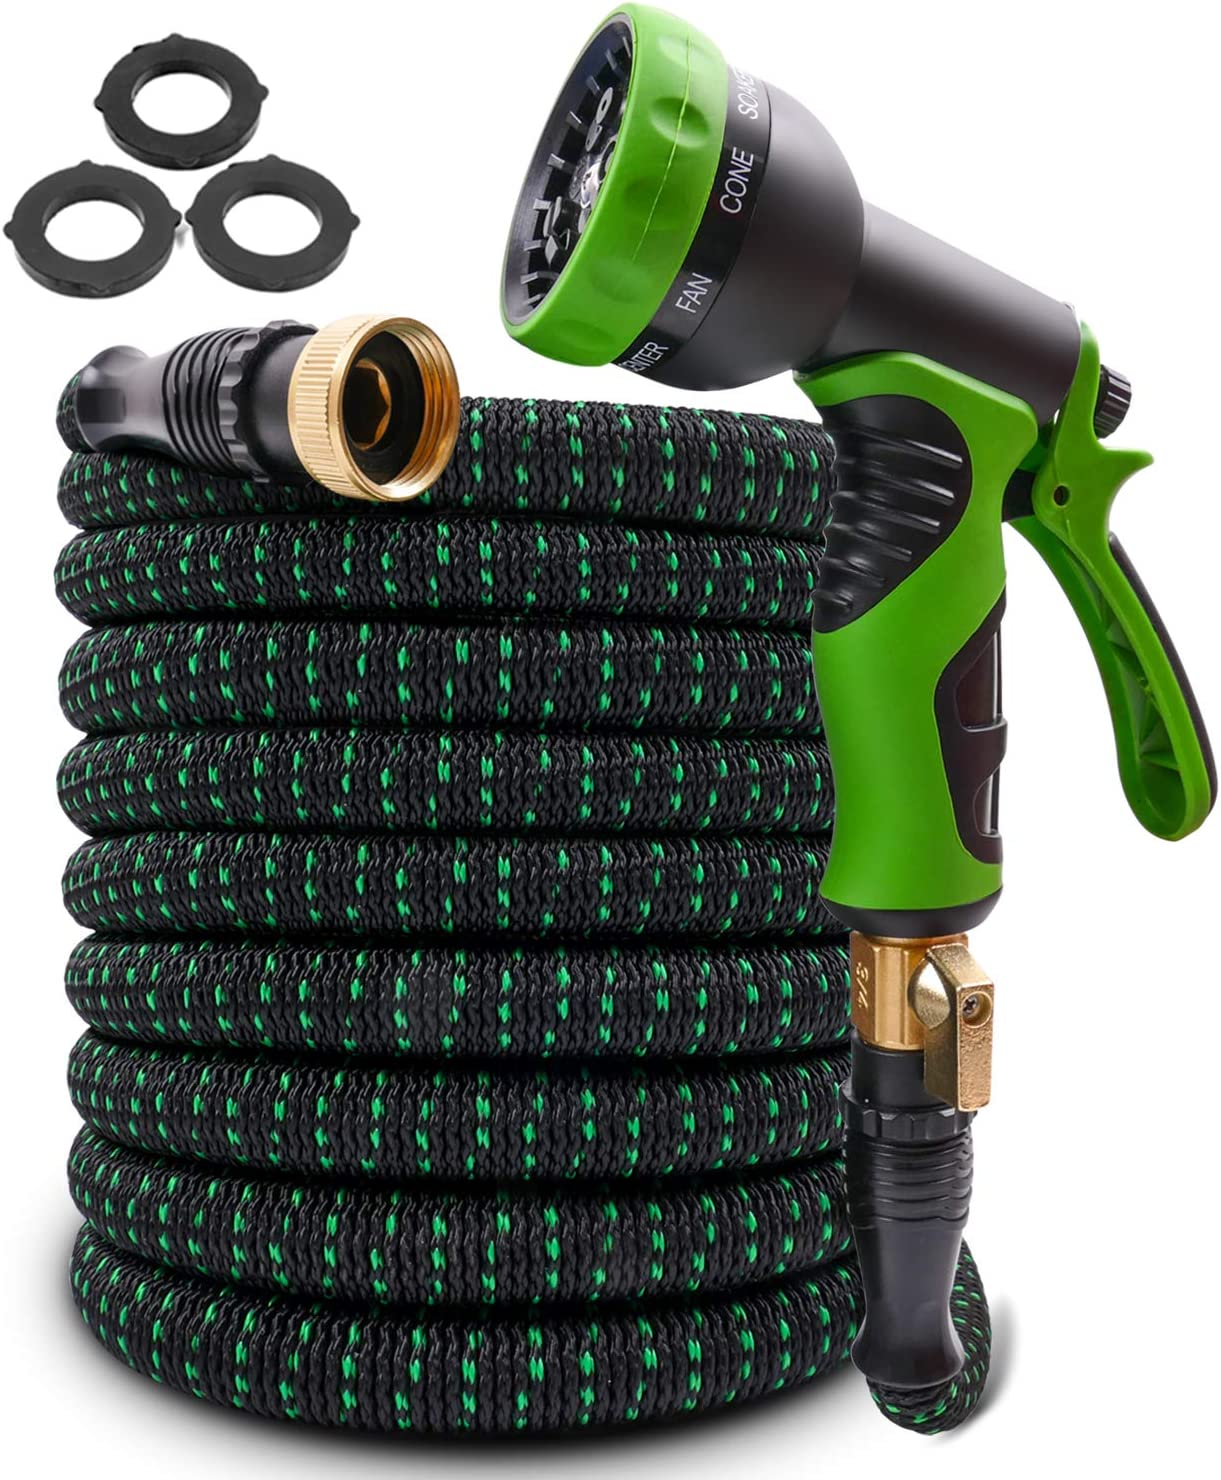 """2020 Upgraded Expandable Garden Hose 100ft Retractable Water Hose Flexible Garden Hose with 3/4"""" Solid Brass Connectors, 9 Modes Spray Nozzle, Ideal Choice for Watering and Washing"""